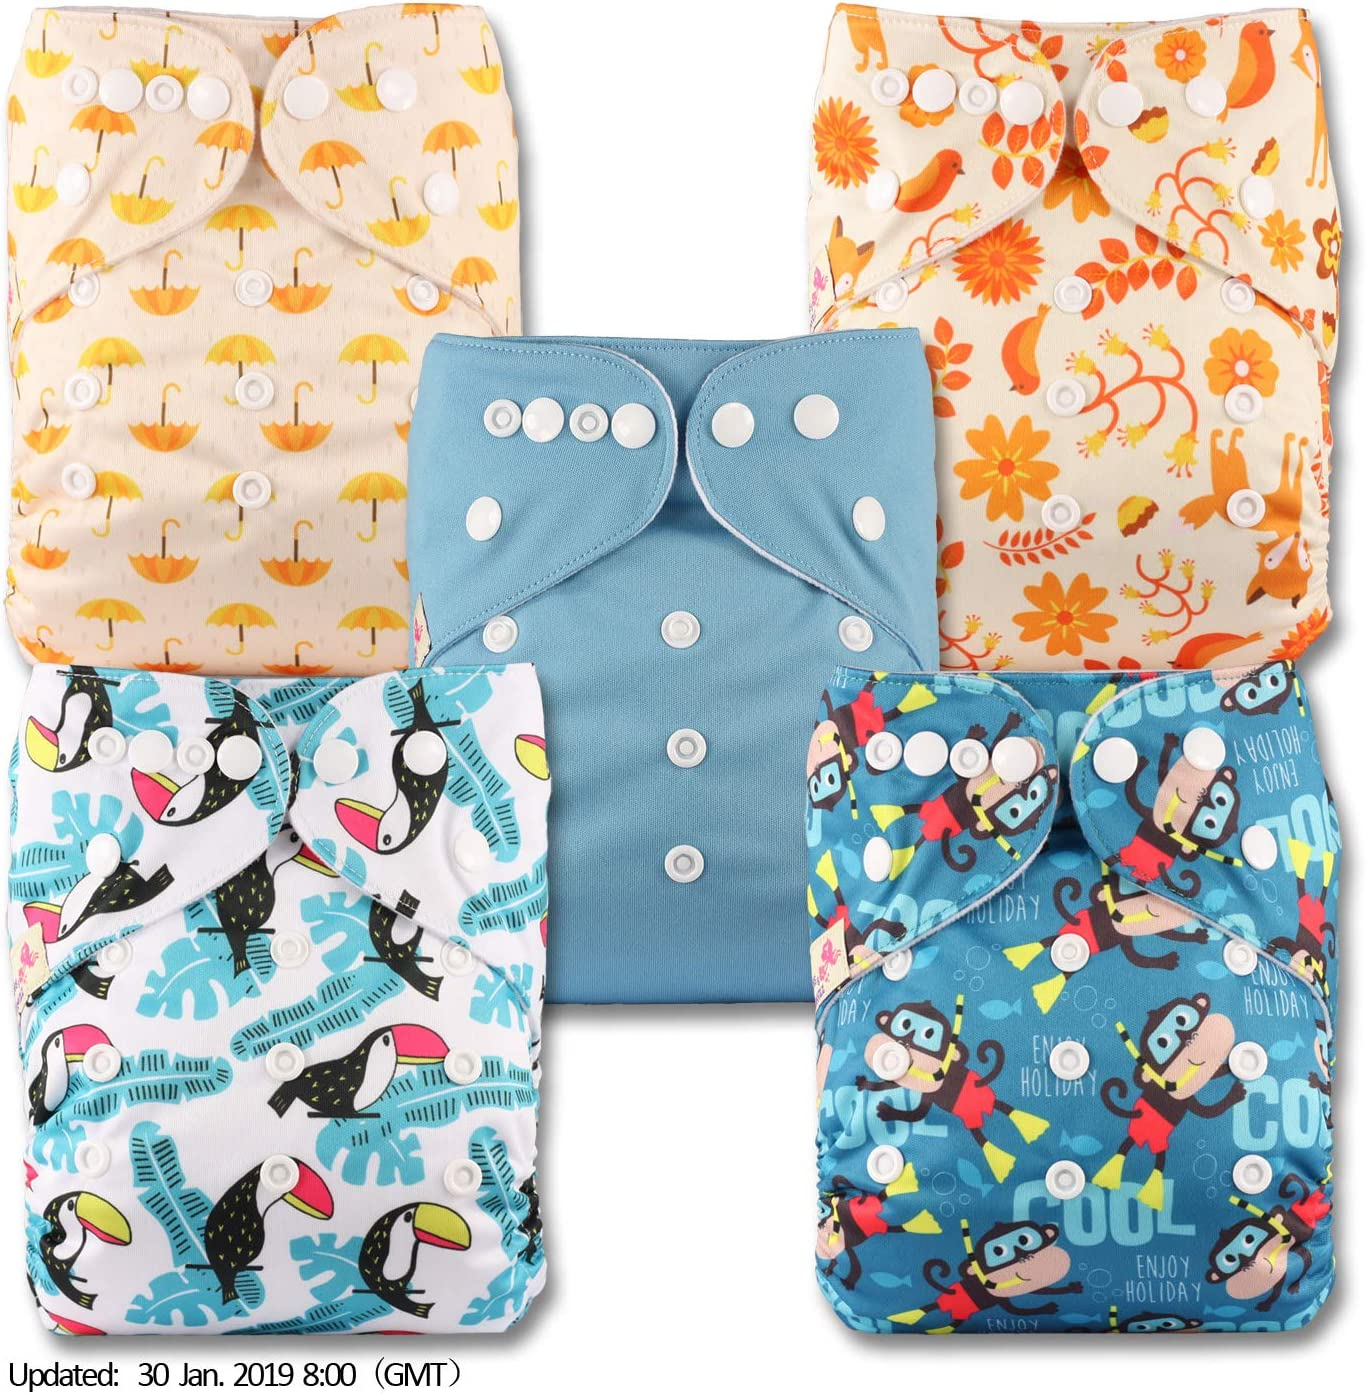 Patterns 508 Fastener: Popper Reusable Pocket Cloth Nappy with 5 Microfibre Inserts Littles /& Bloomz Set of 5